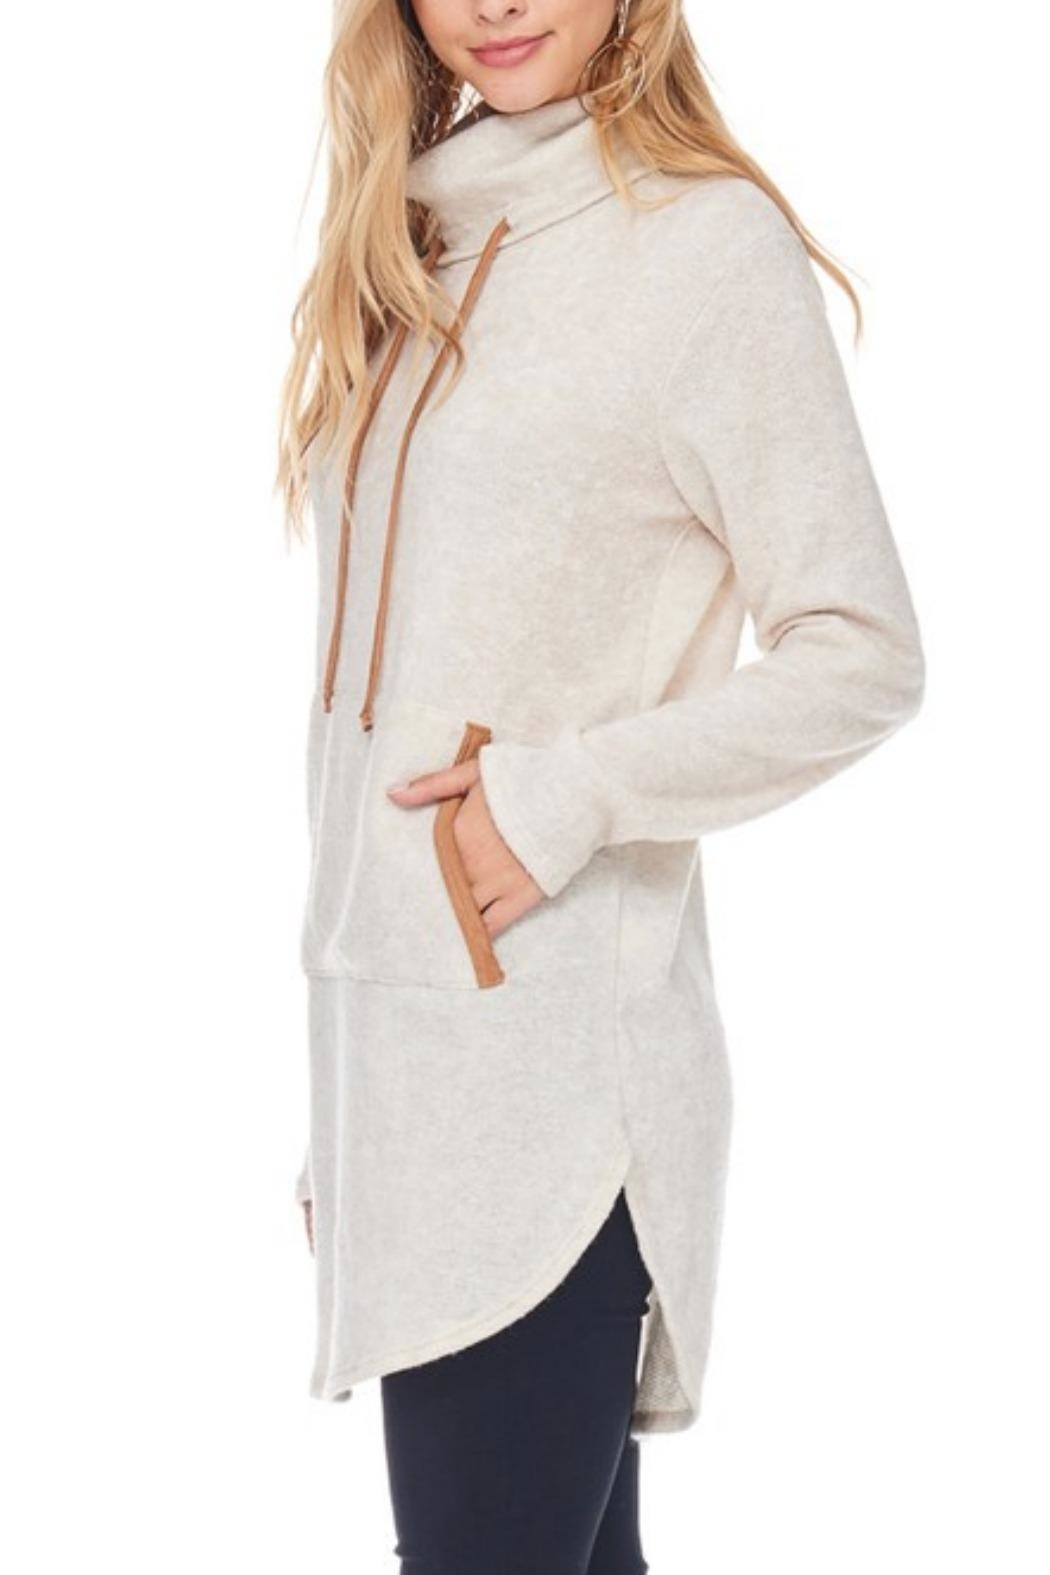 Hailey & Co Highneck Sweater Tunic - Front Full Image